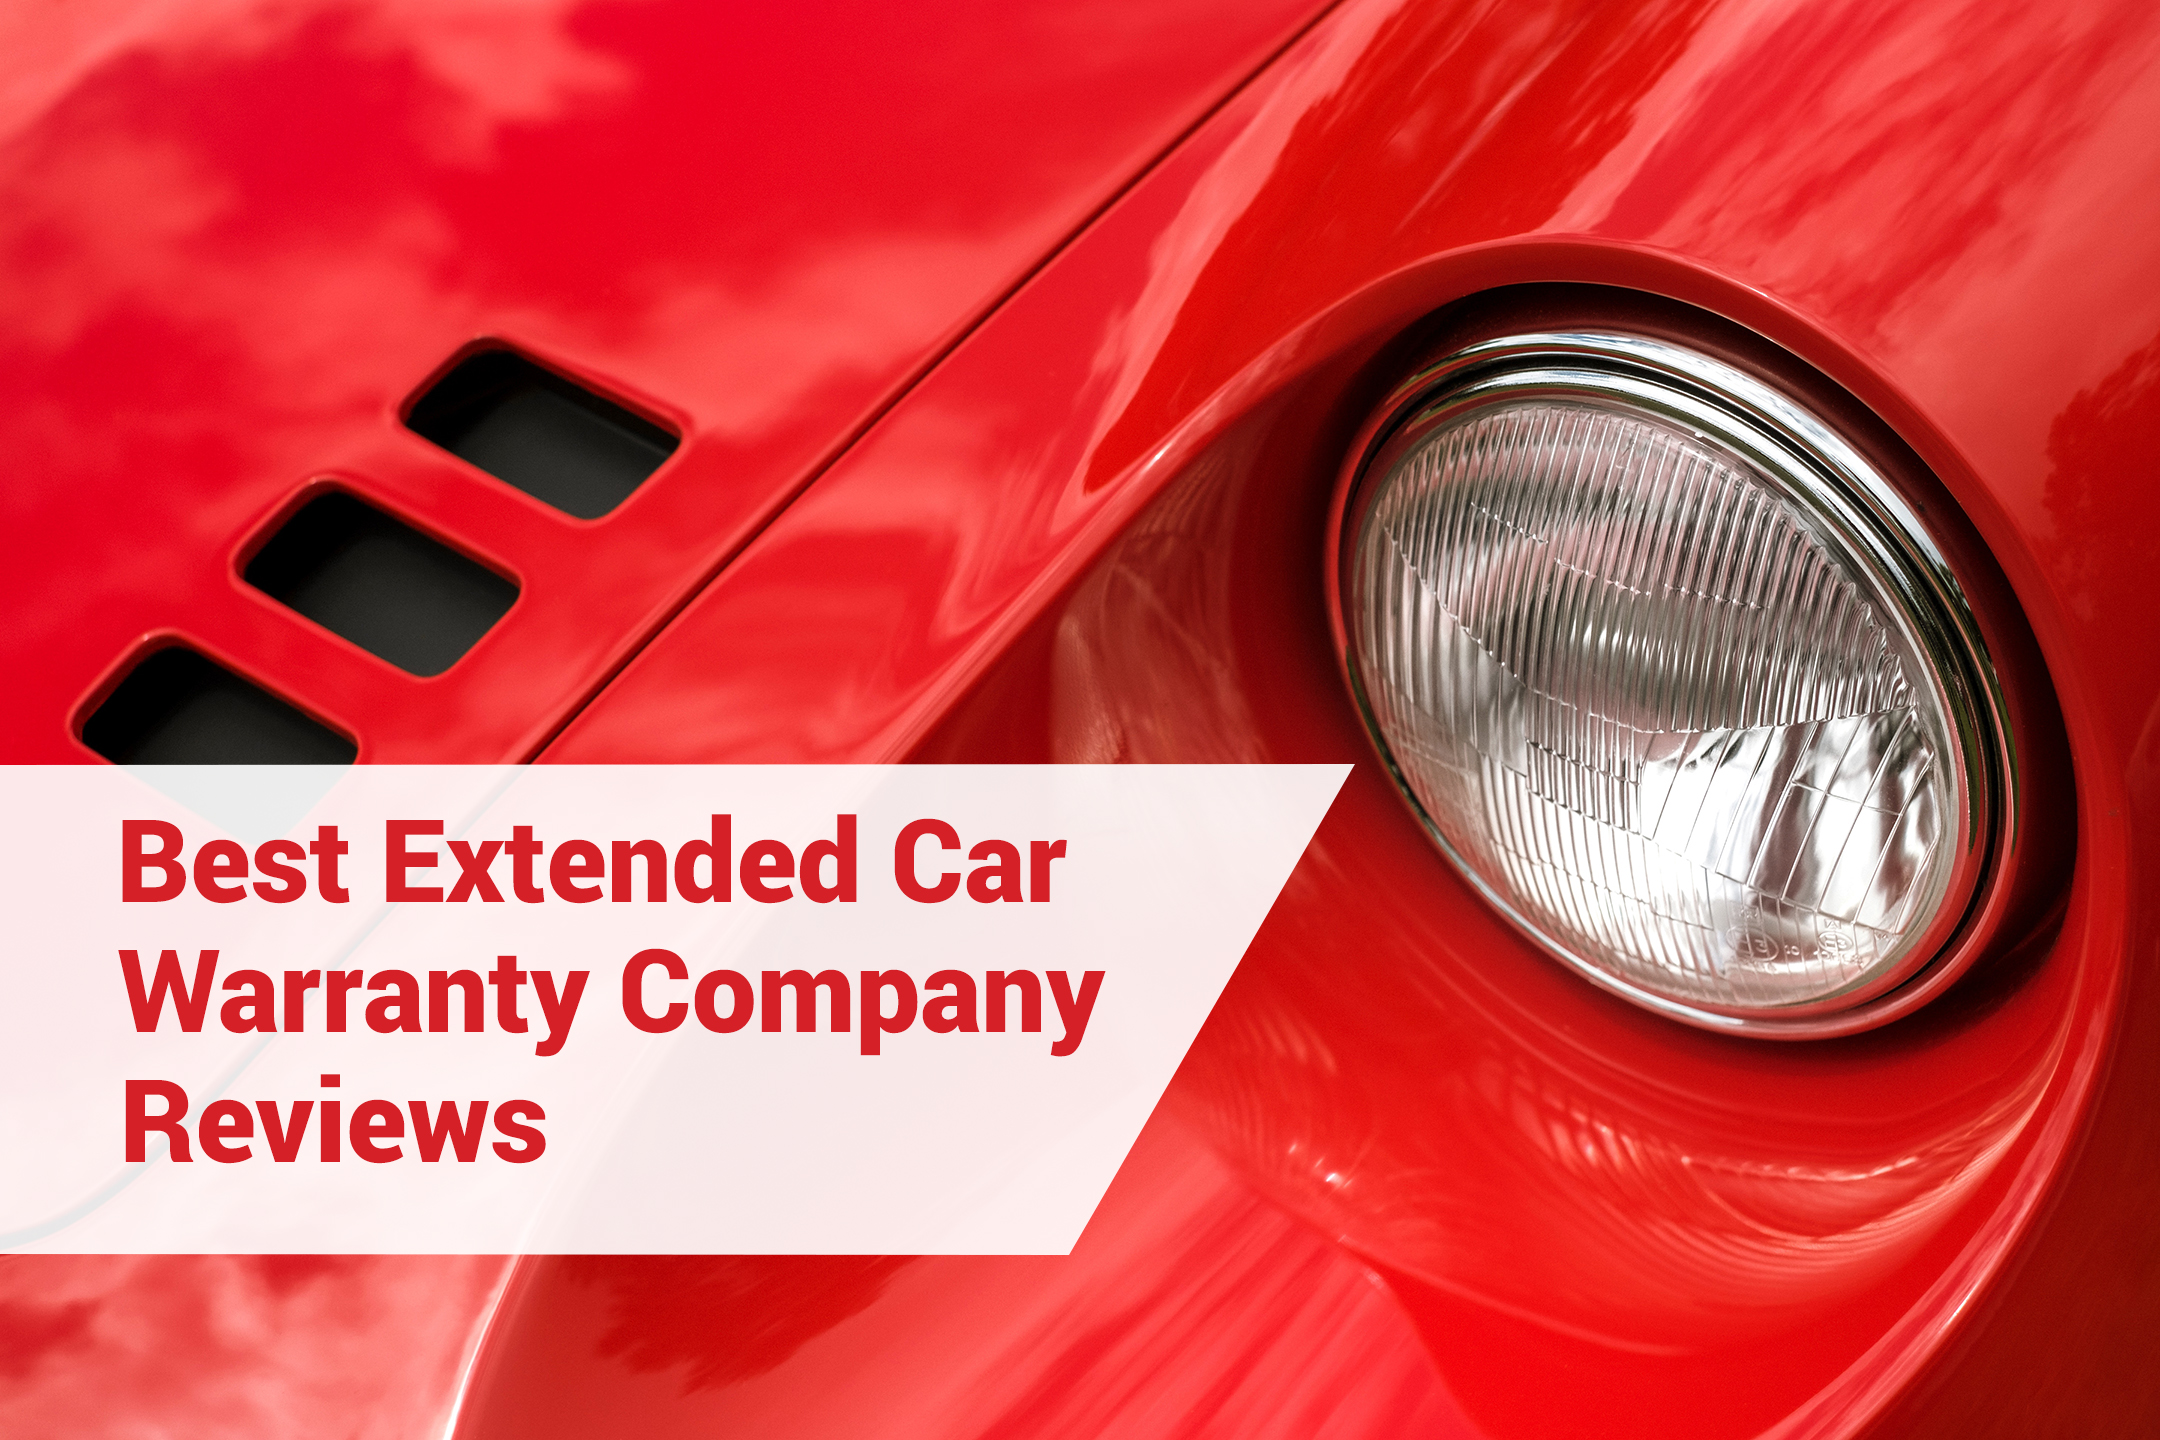 Extended Car Warranty Company Reviews